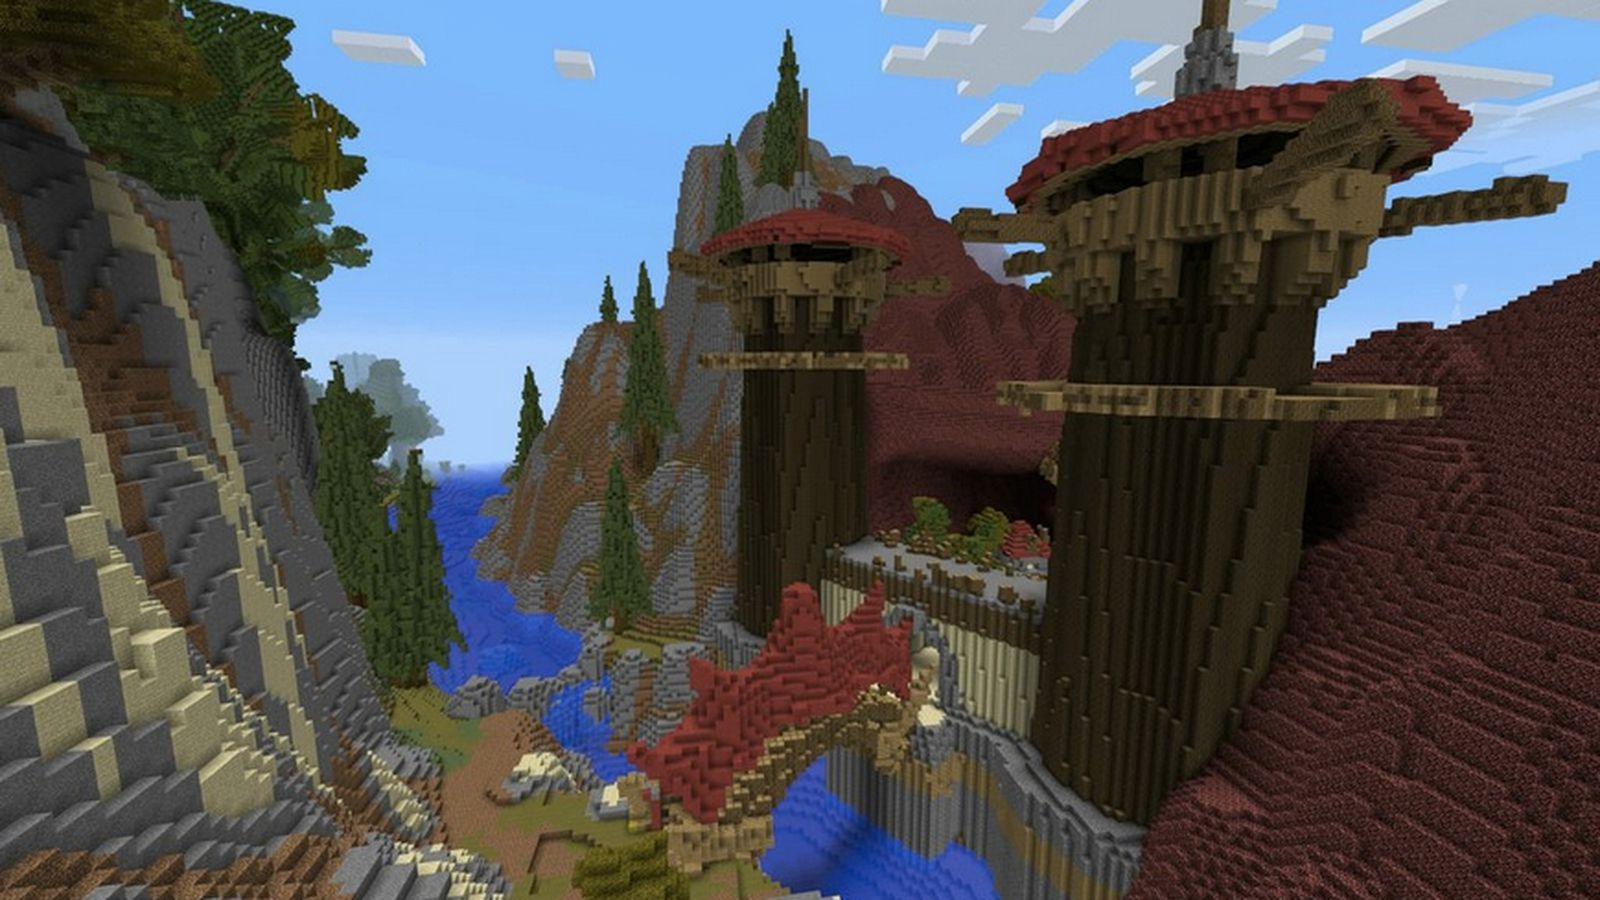 Crafting Azeroth project brings World of Warcraft to Minecraft – Map World of Warcraft Minecraft